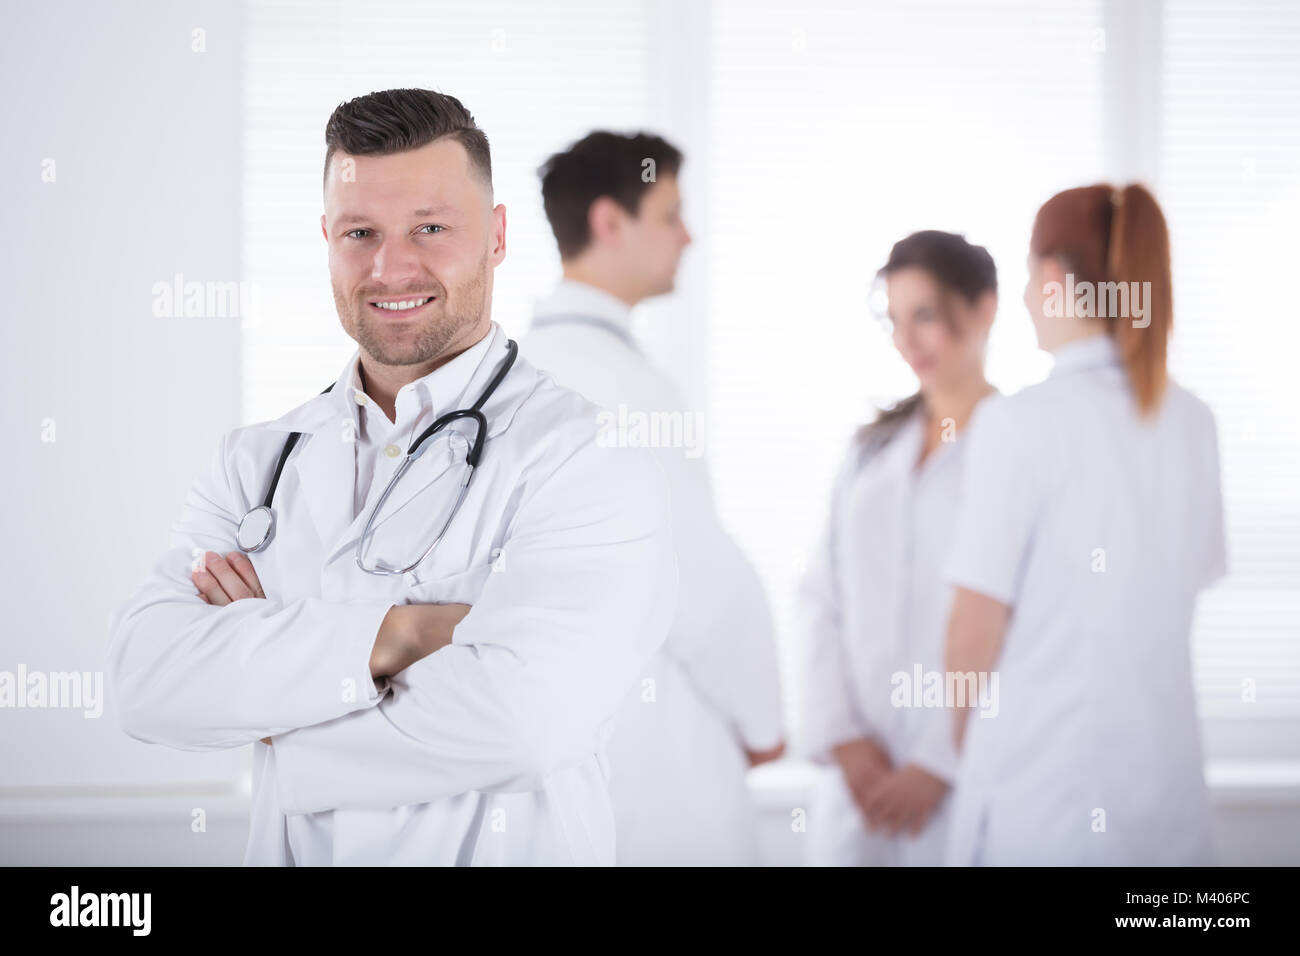 Portrait Of Confidence Professional Male Doctor With Stethoscope - Stock Image